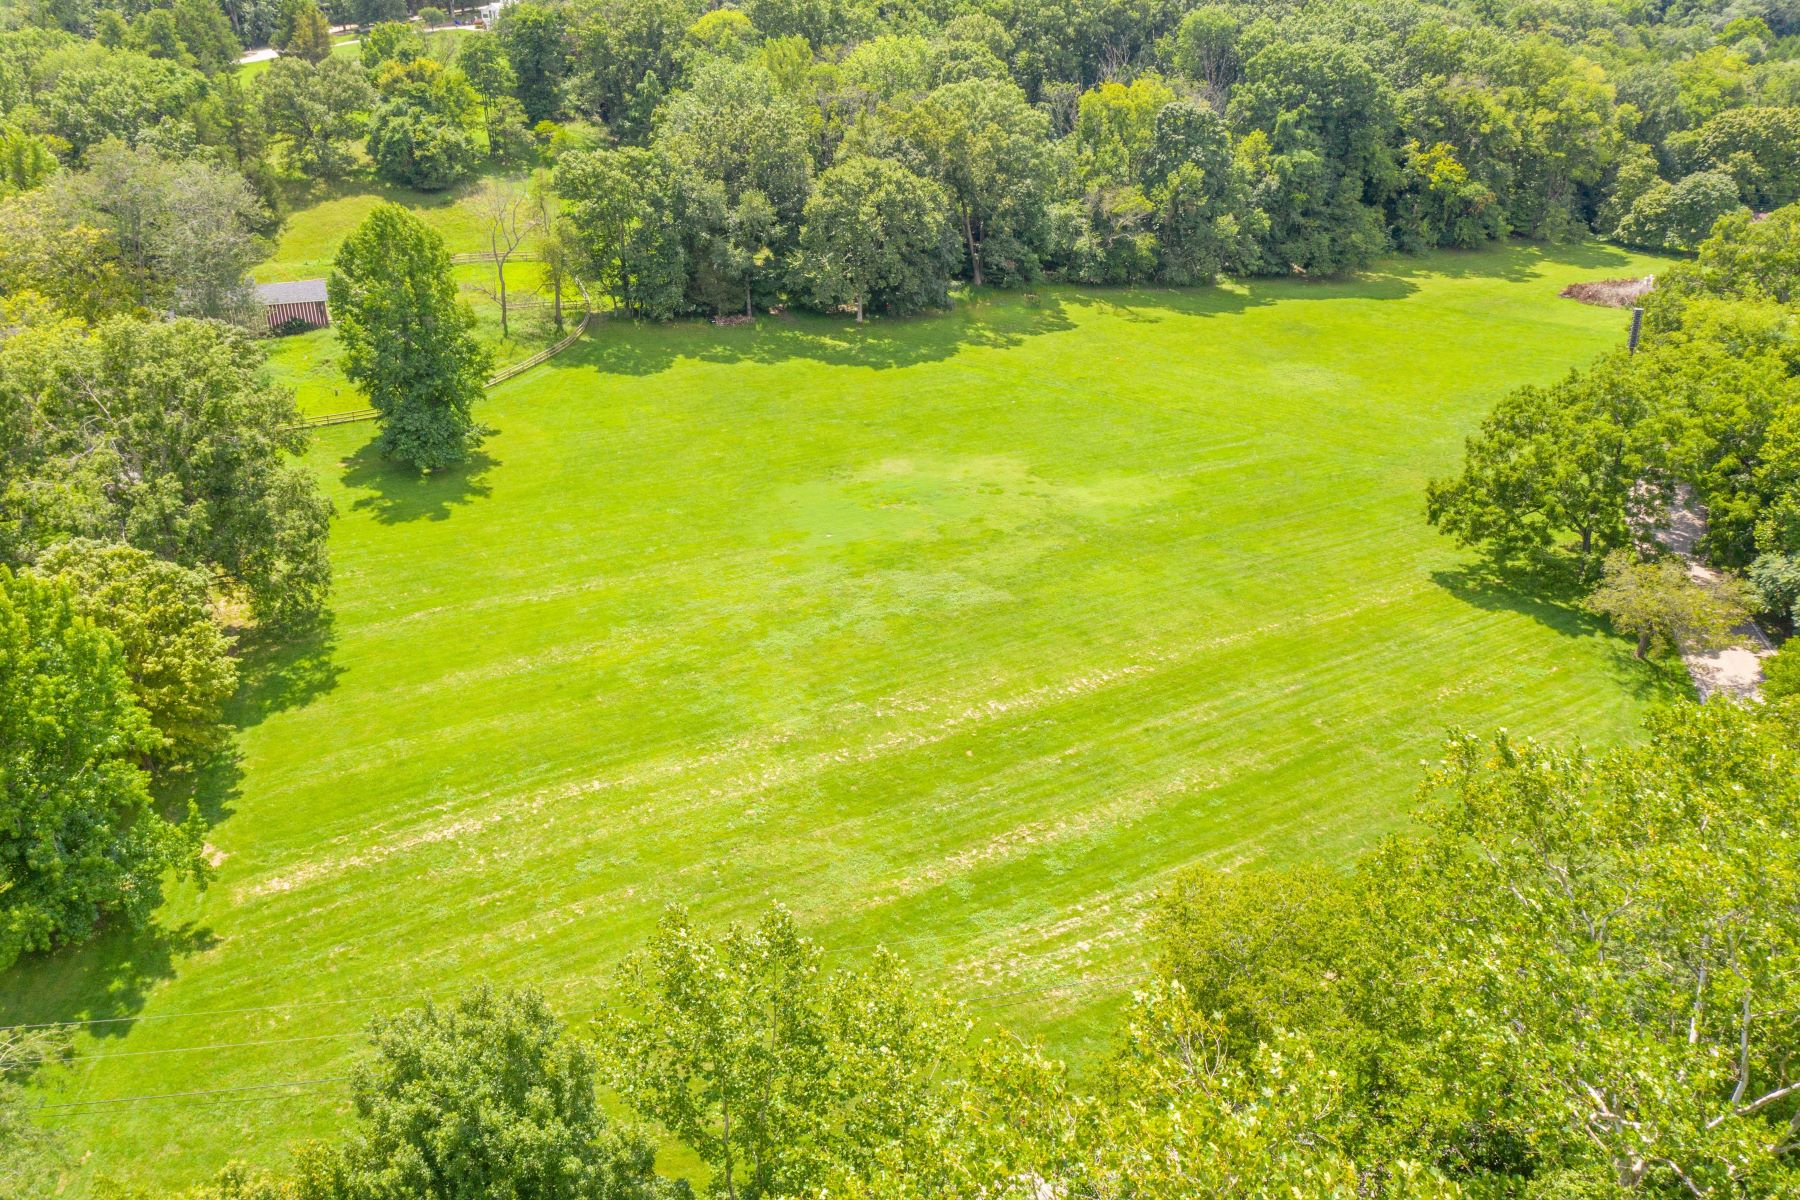 Land for Sale at Picturesque 3-acre lot in Wildwood 816 Forby Road Eureka, Missouri 63025 United States